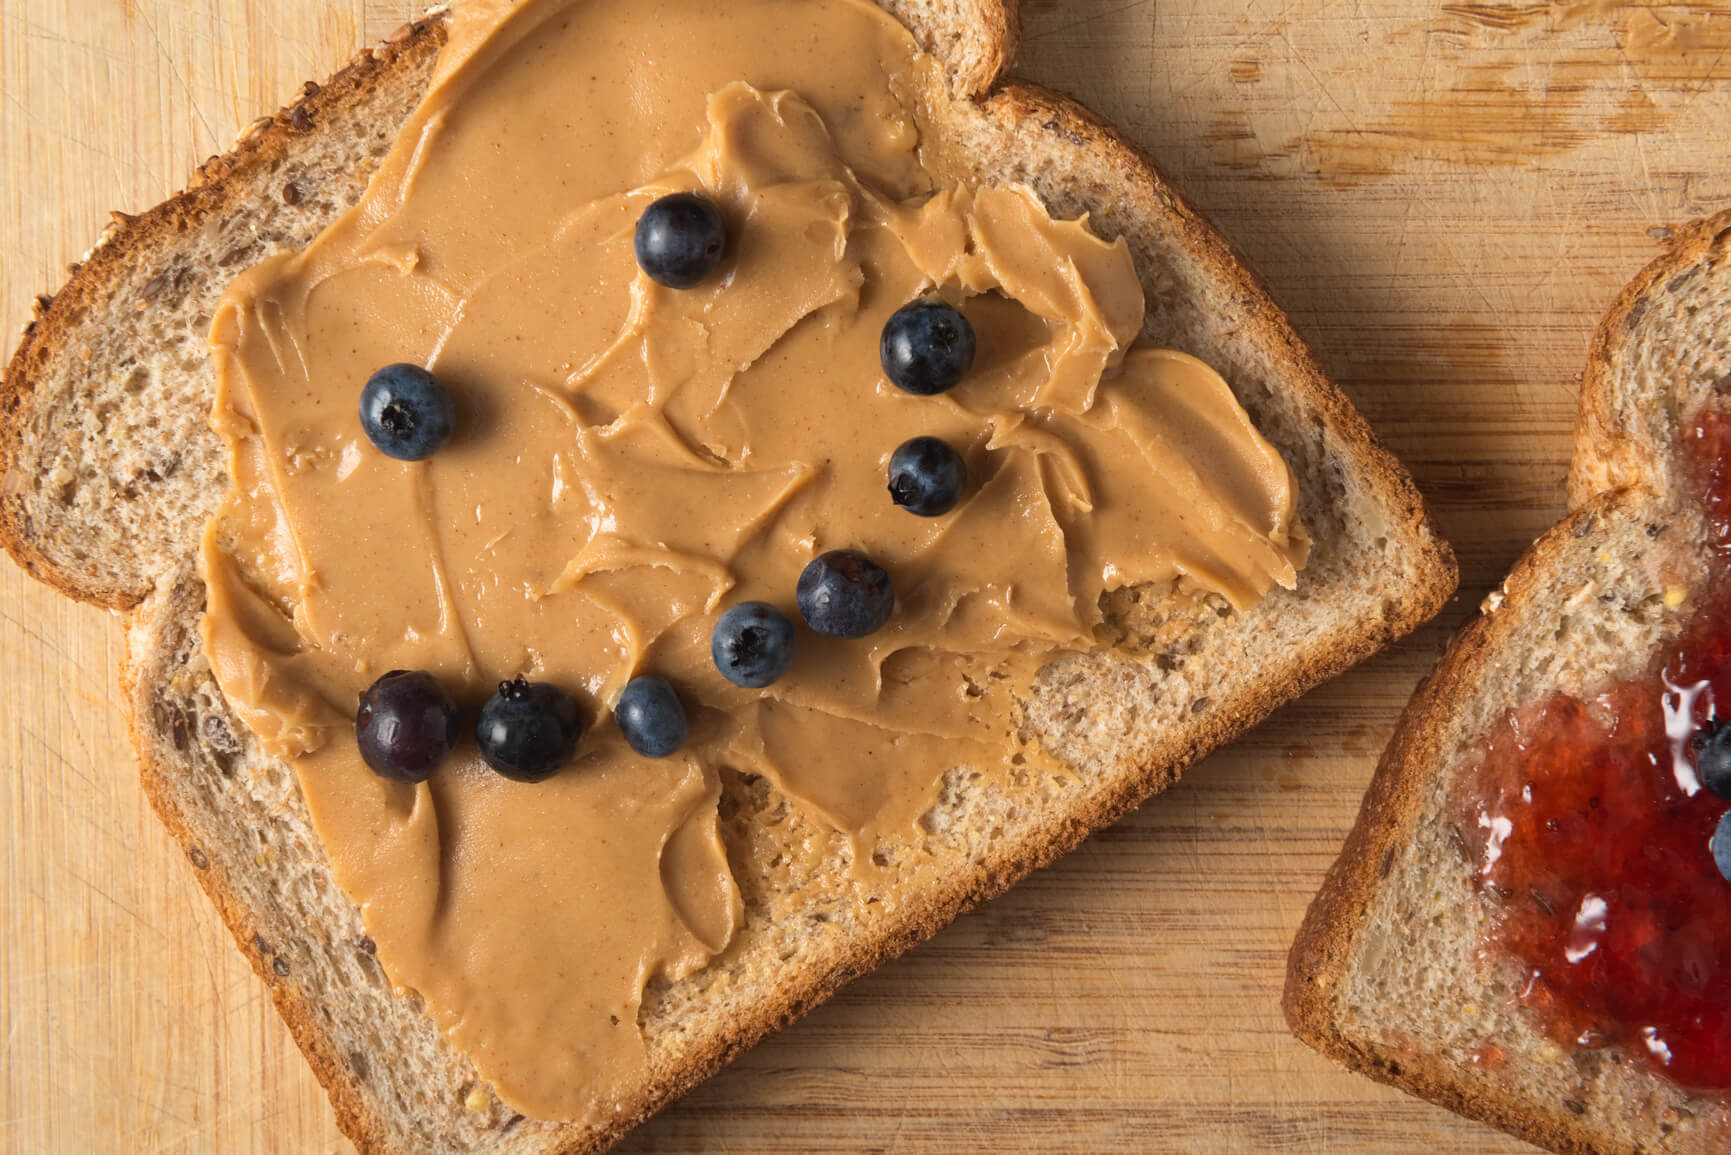 Finding a cure for peanut allergy sufferers